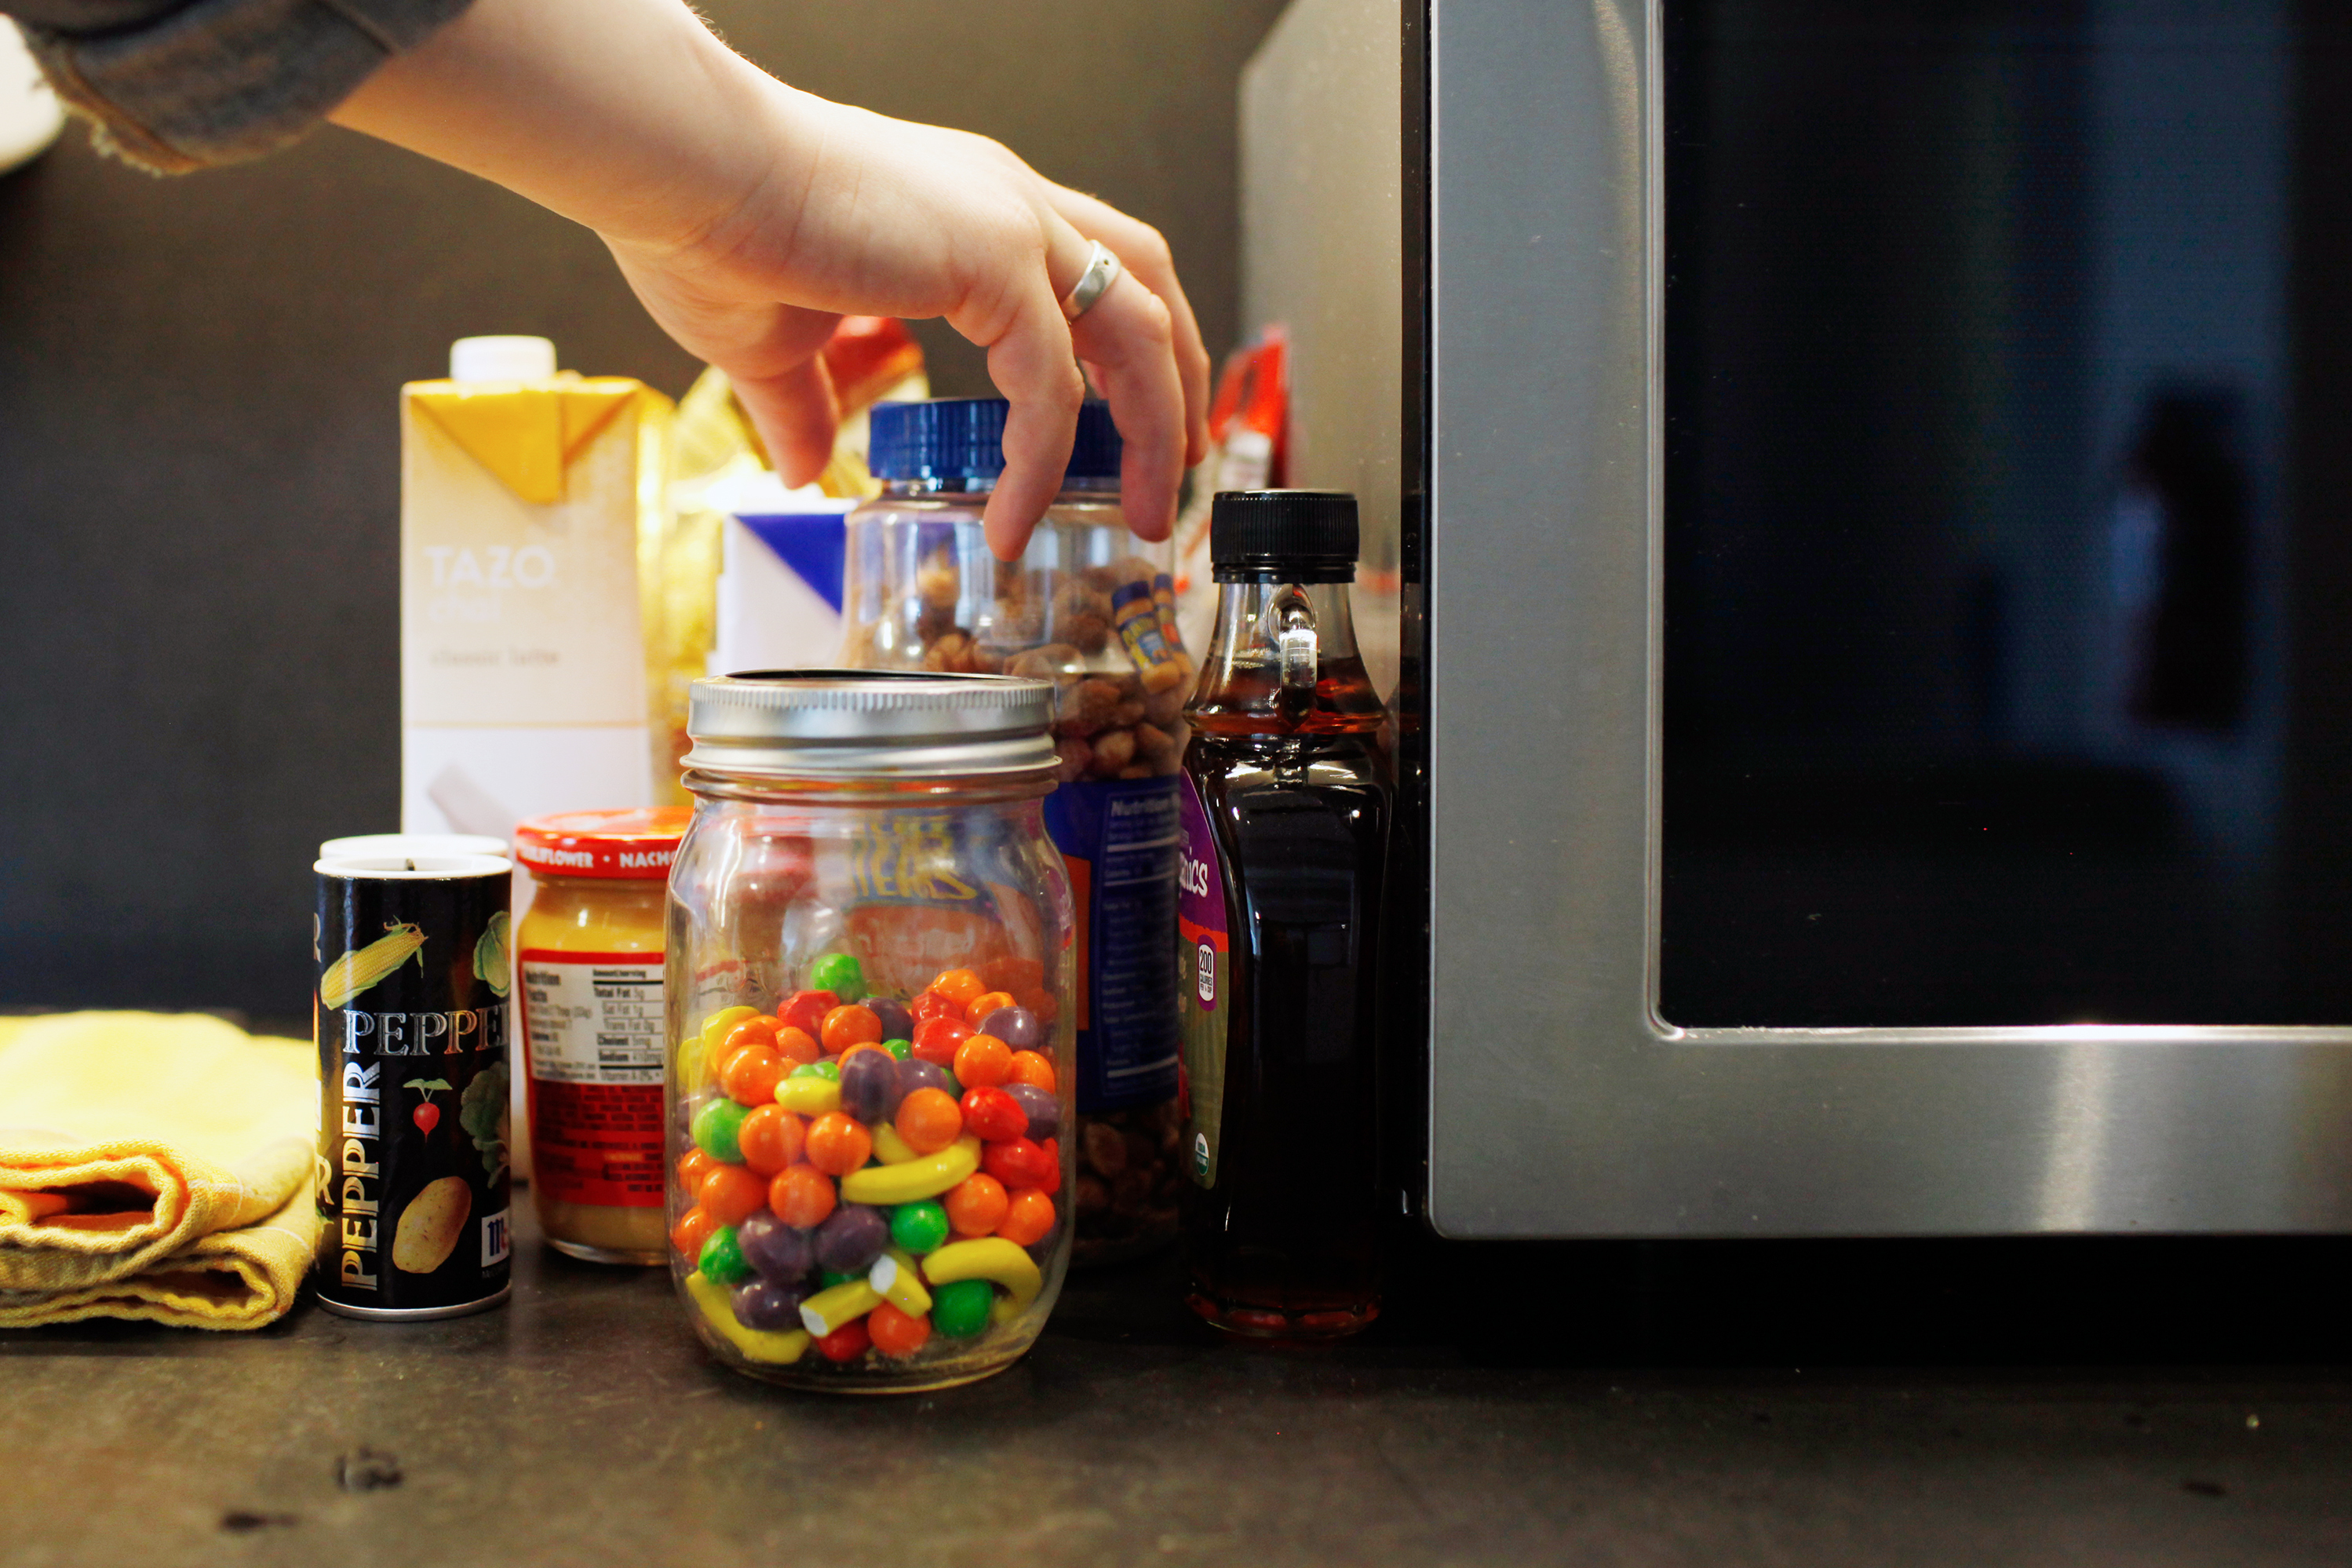 How We Store Food At Home Could Be Linked To How Much We Eat